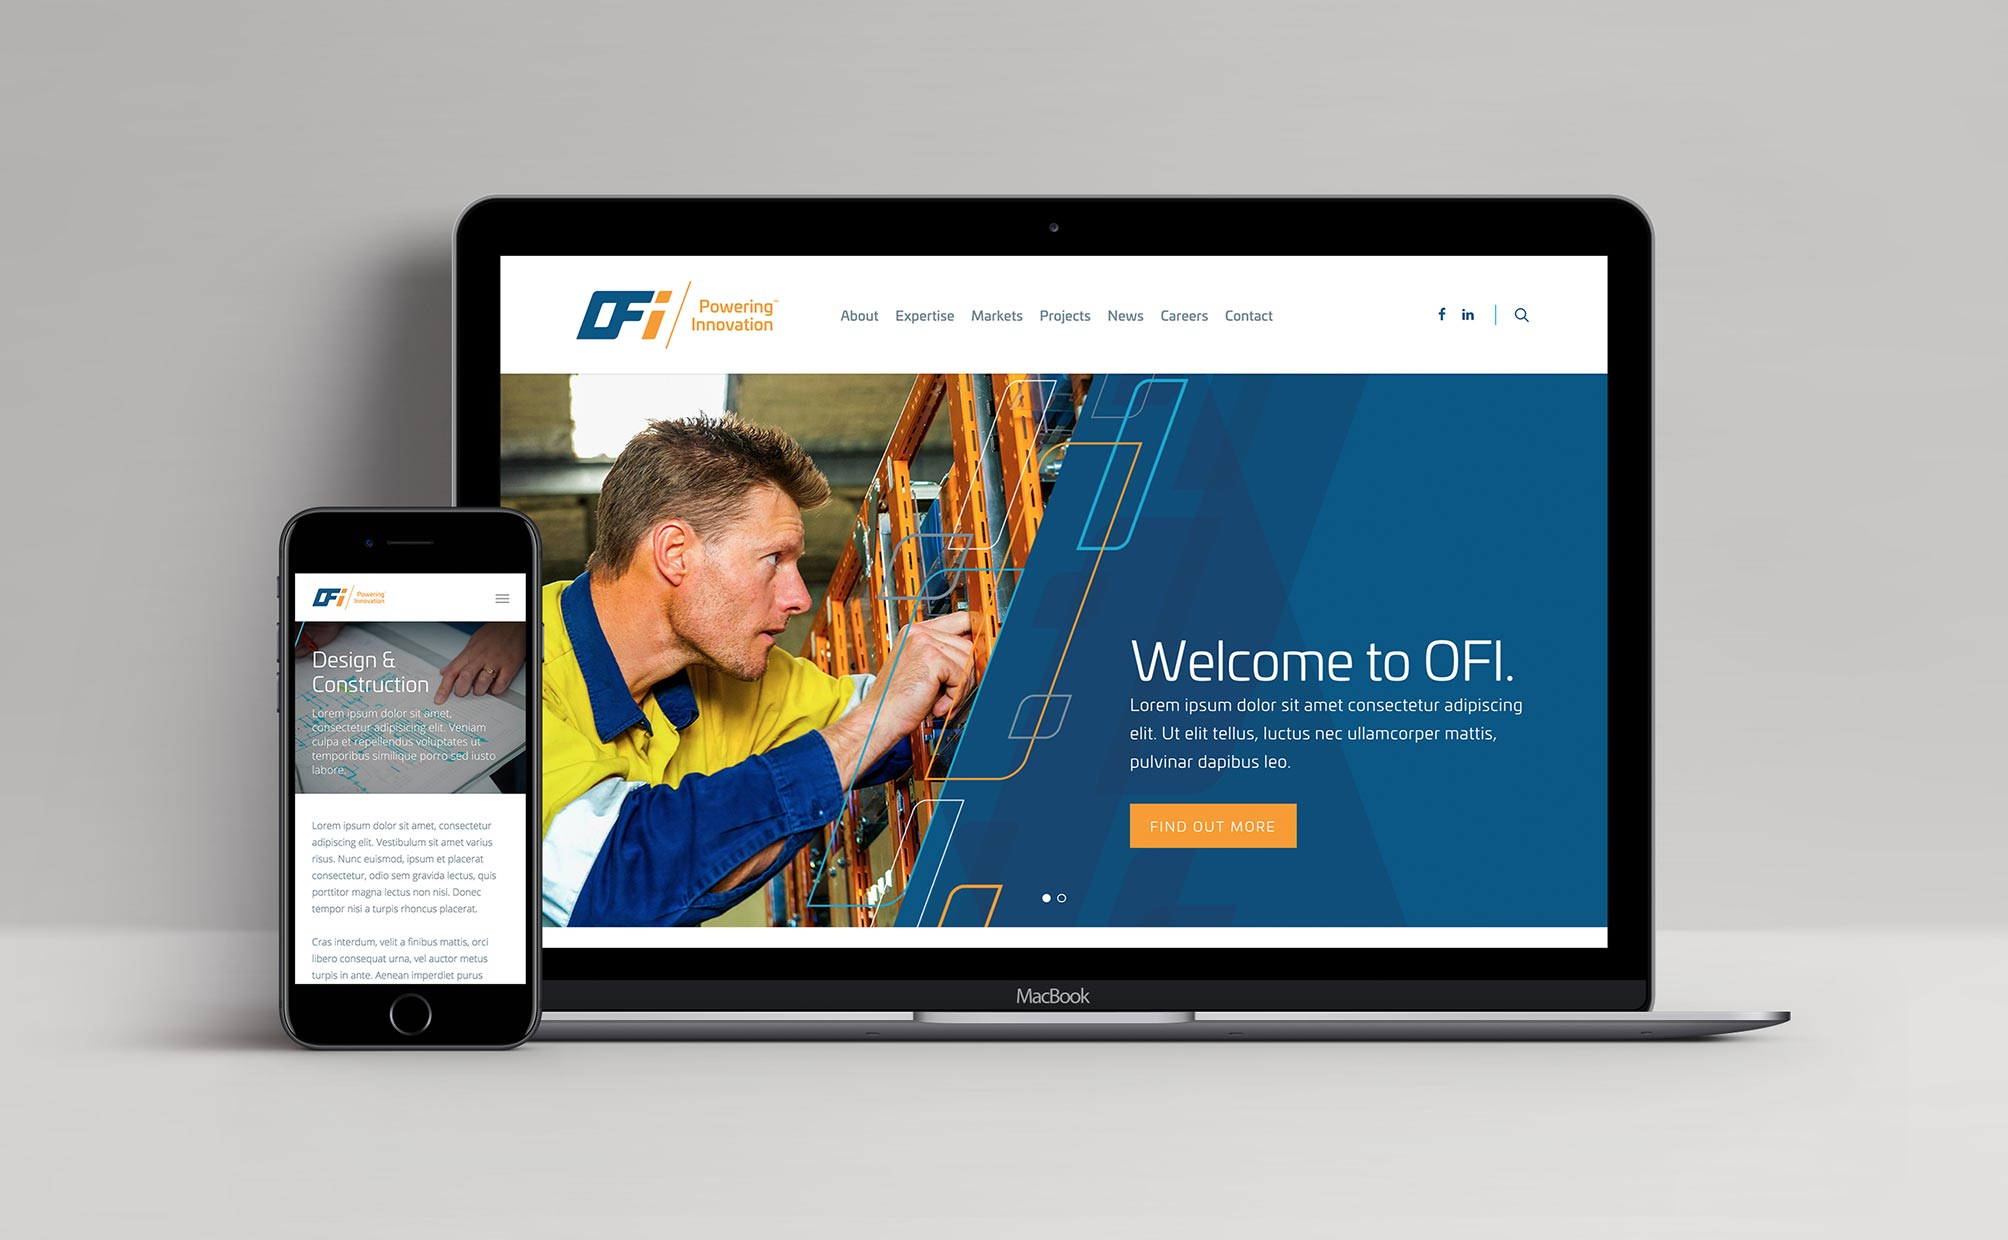 New website design for OFI